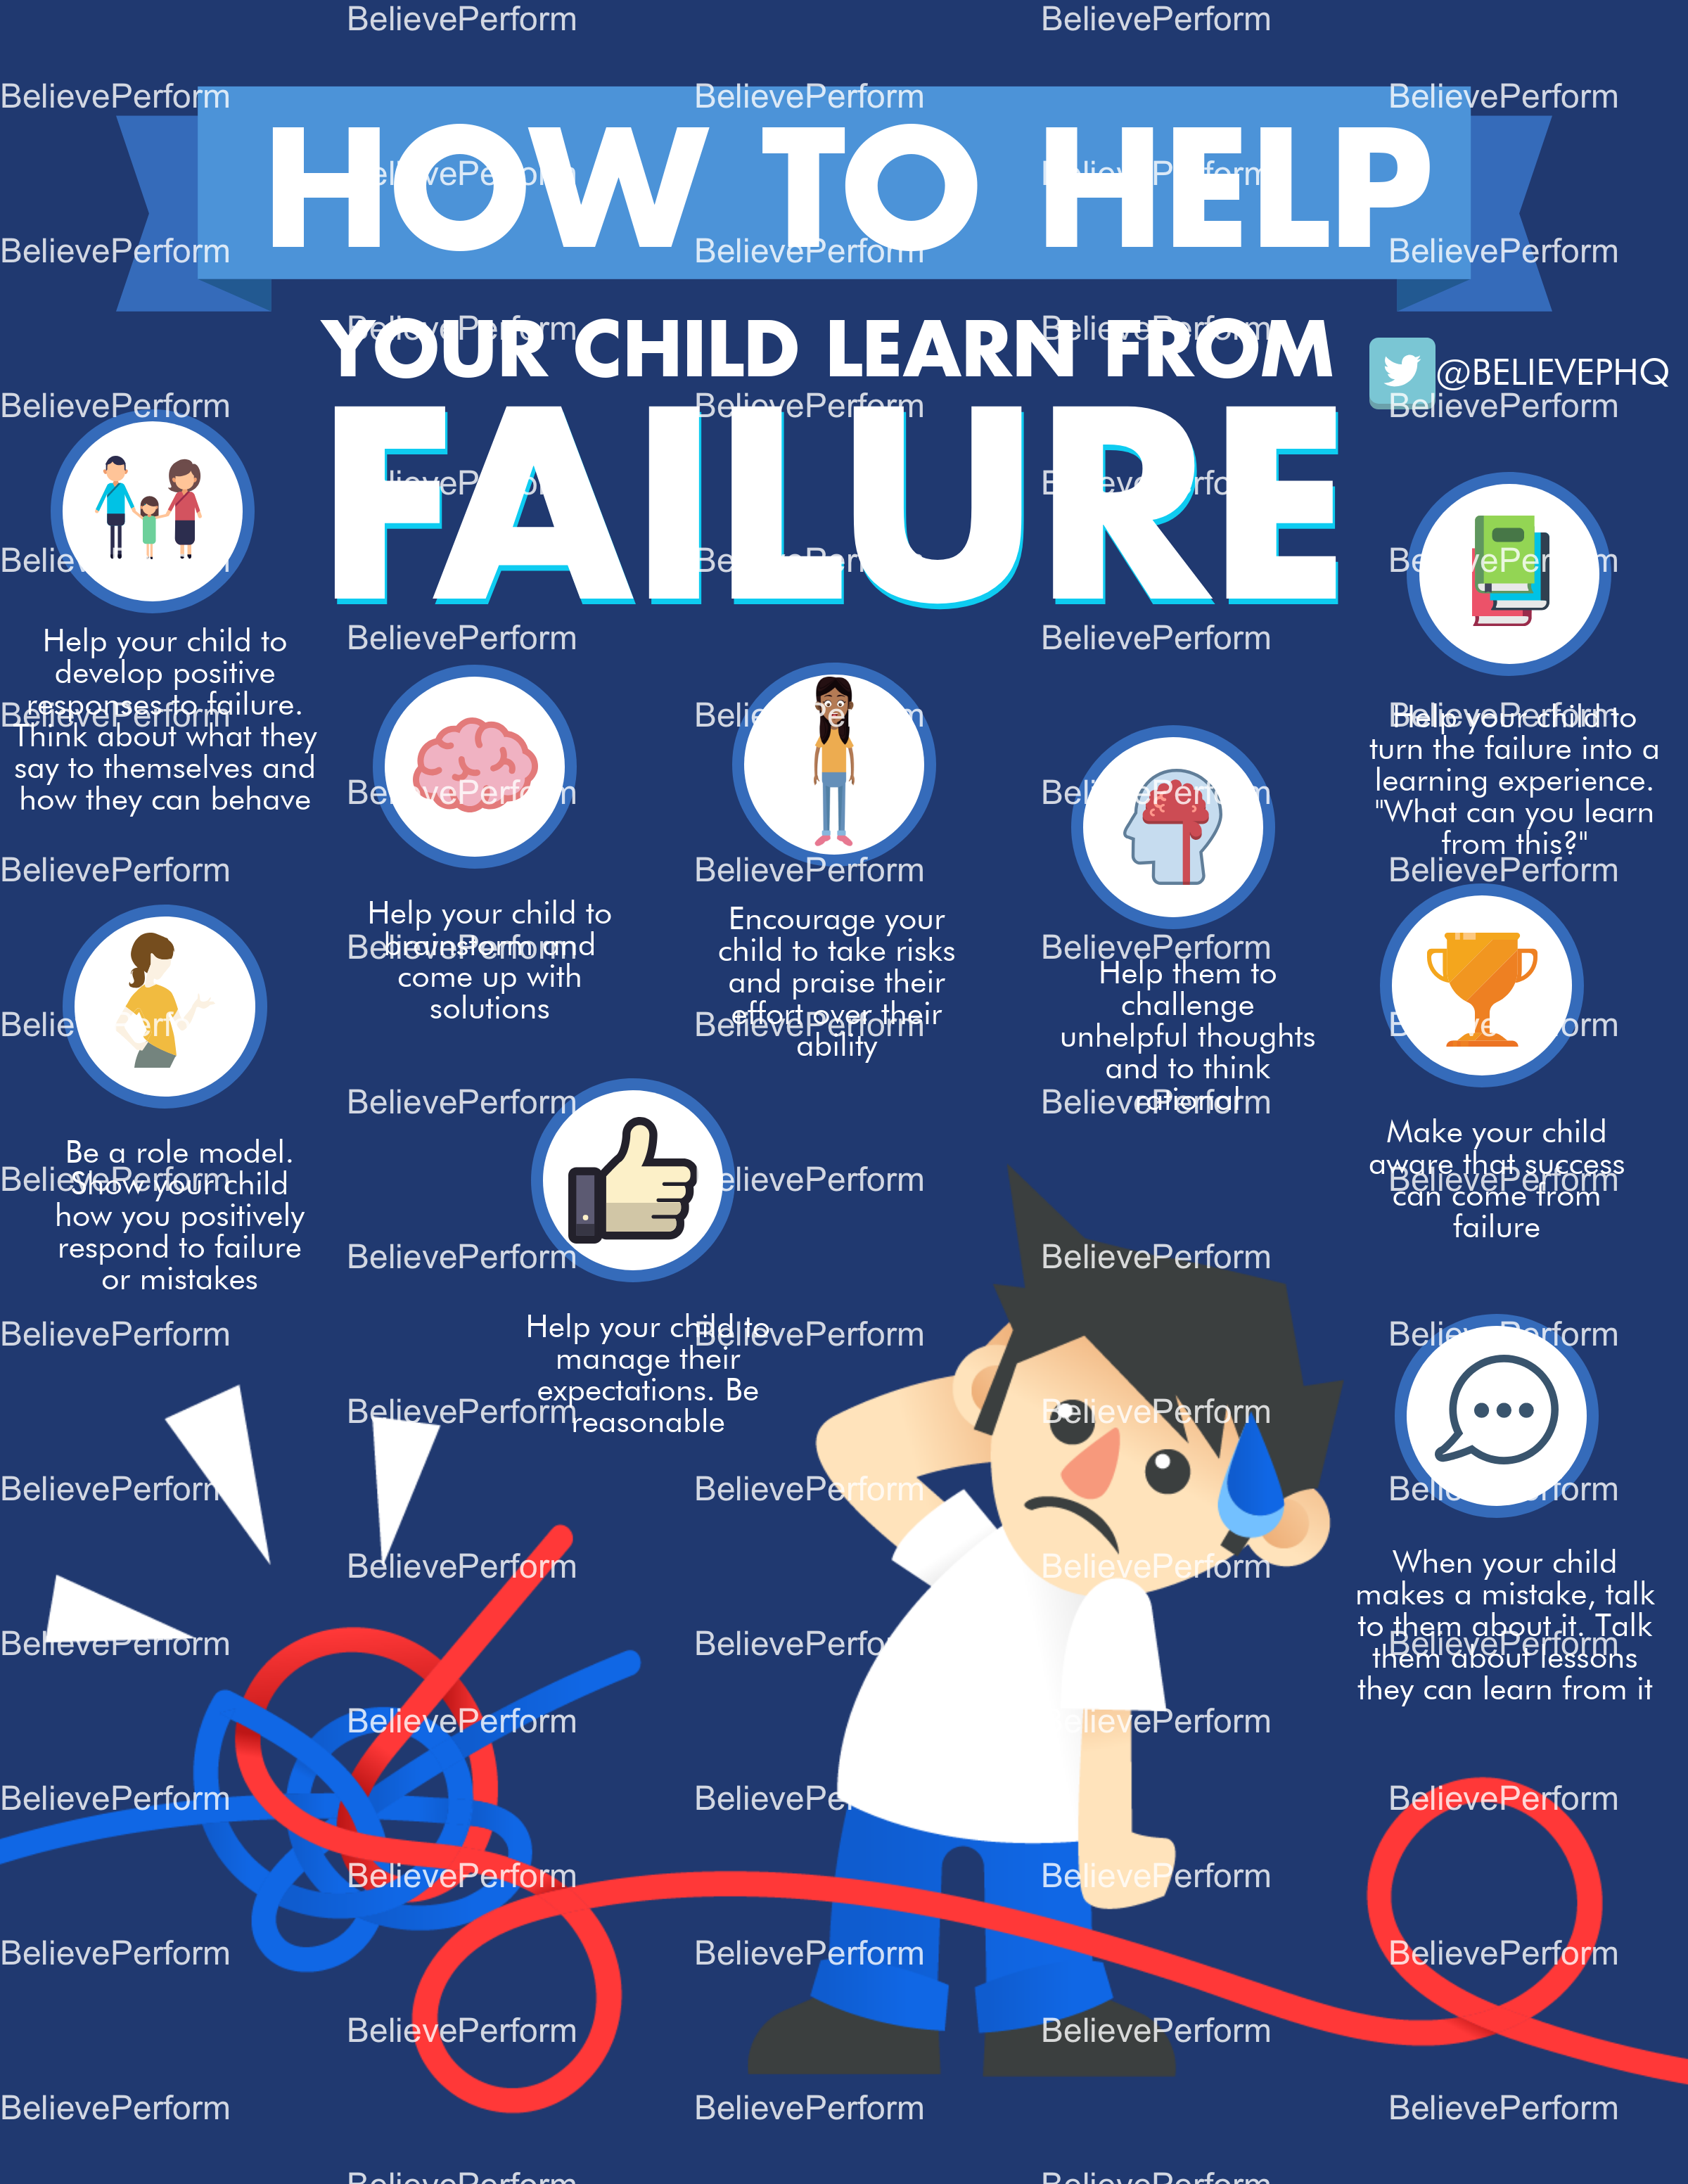 How to help your child learn from failure